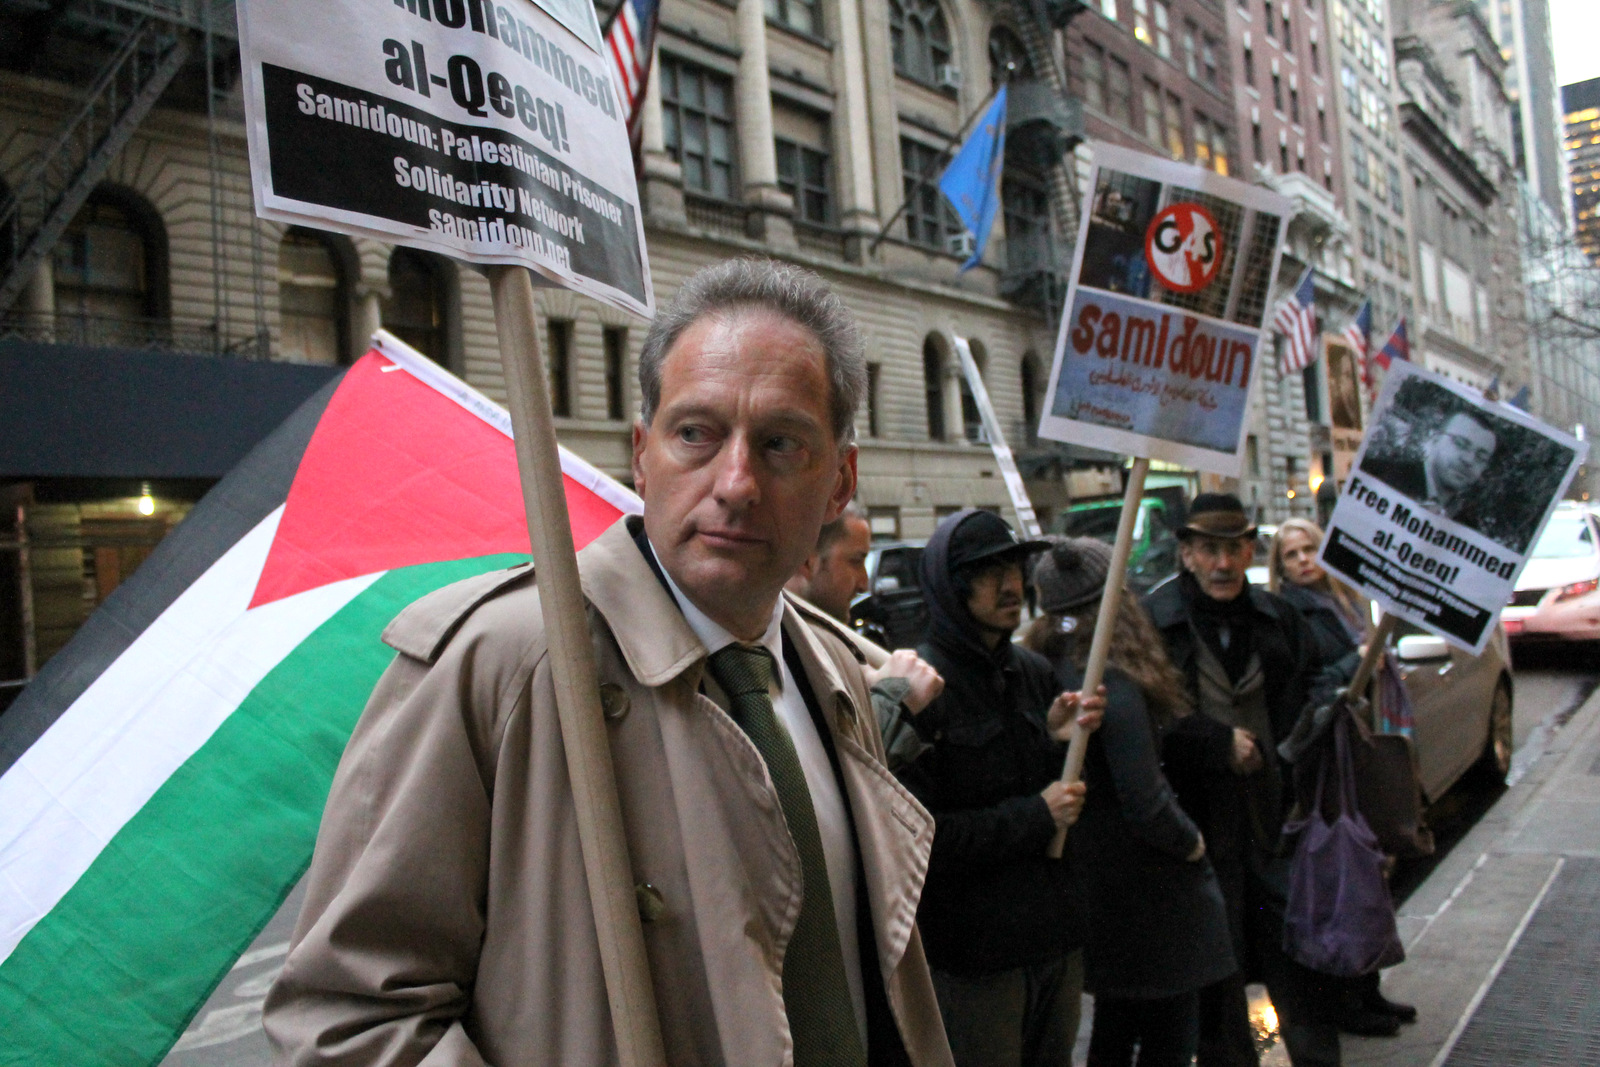 New Yorkers took to the streets on Friday, 29 January to demand the immediate release of imprisoned Palestinian journalist Mohammed al-Qeeq, on his 66th day of hunger strike and shackled to his hospital bed in critical condition.